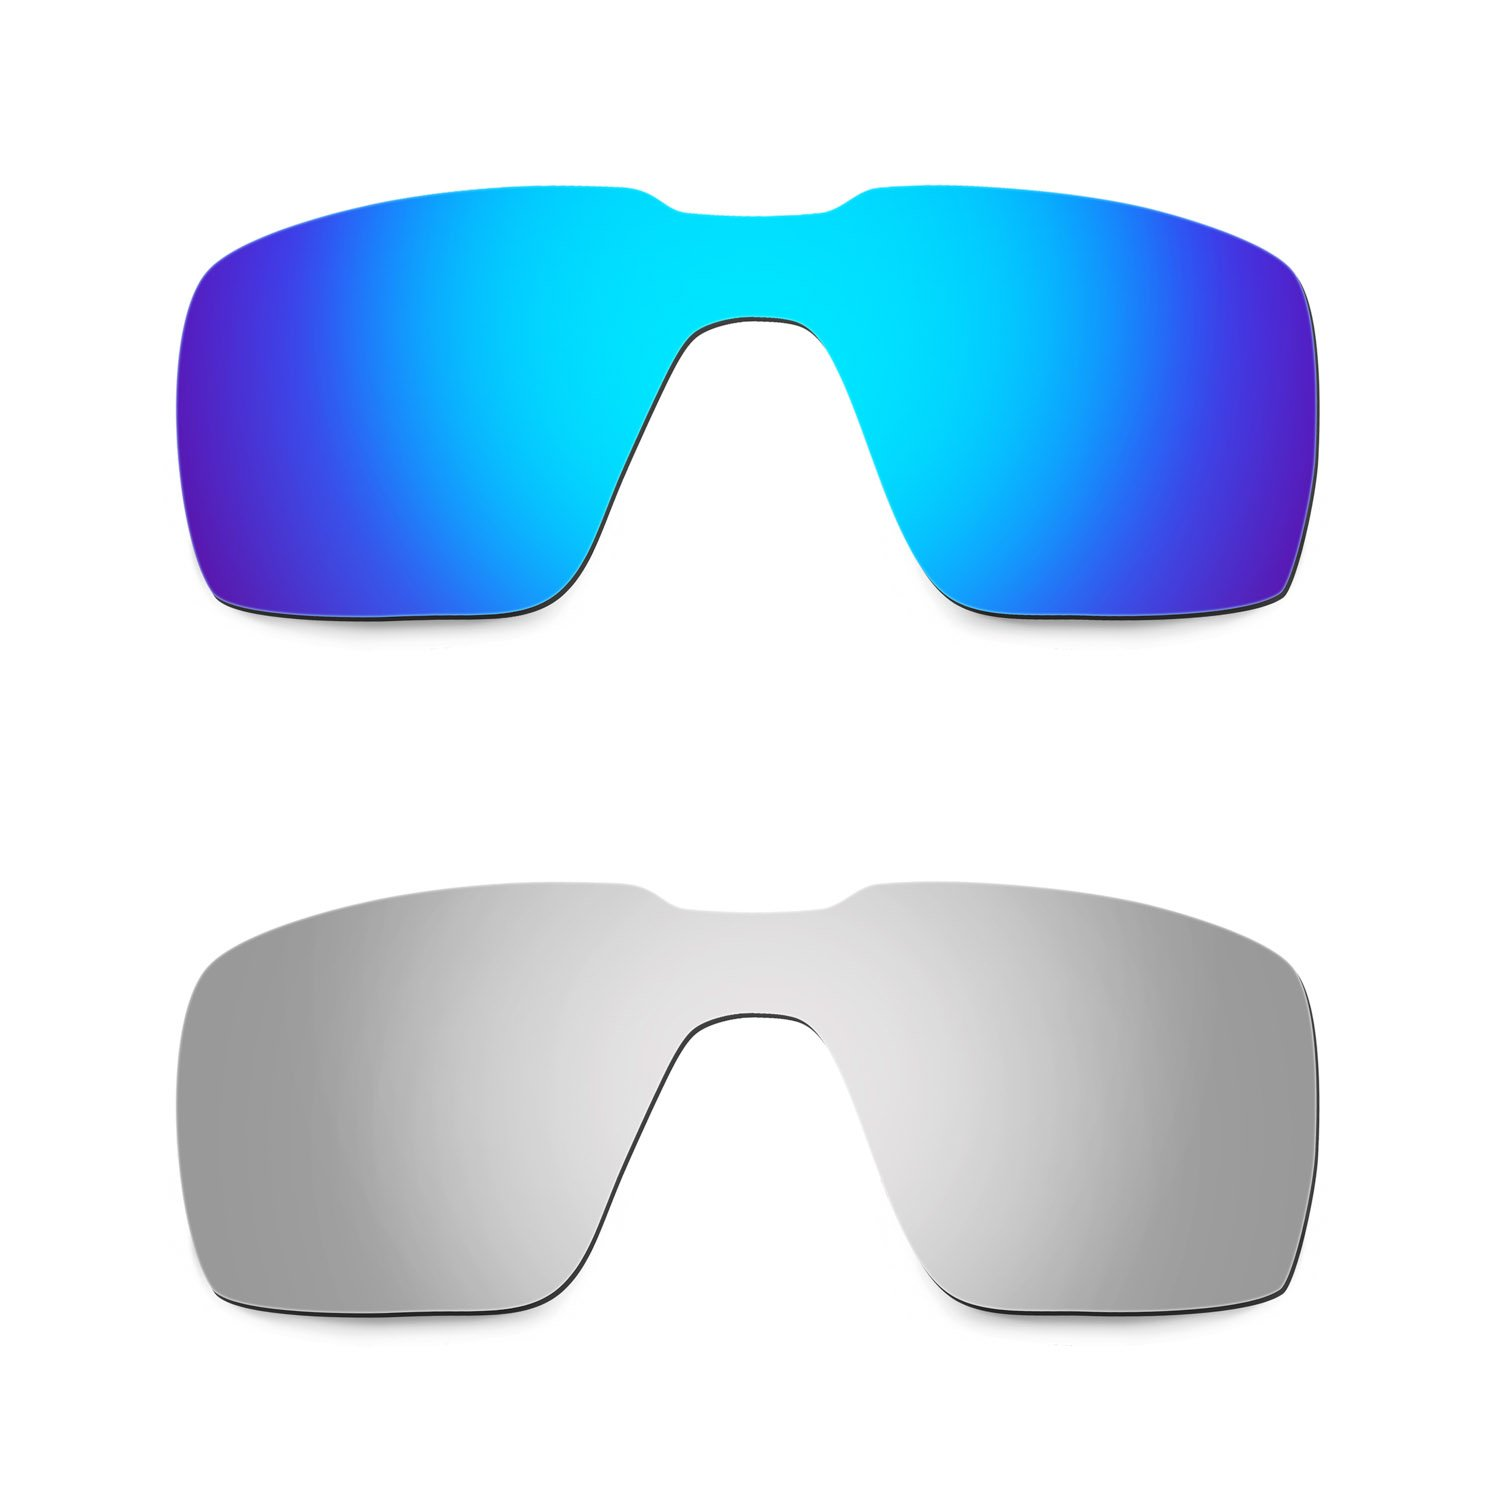 Hkuco Mens Replacement Lenses For Oakley Probation Blue/Titanium Sunglasses